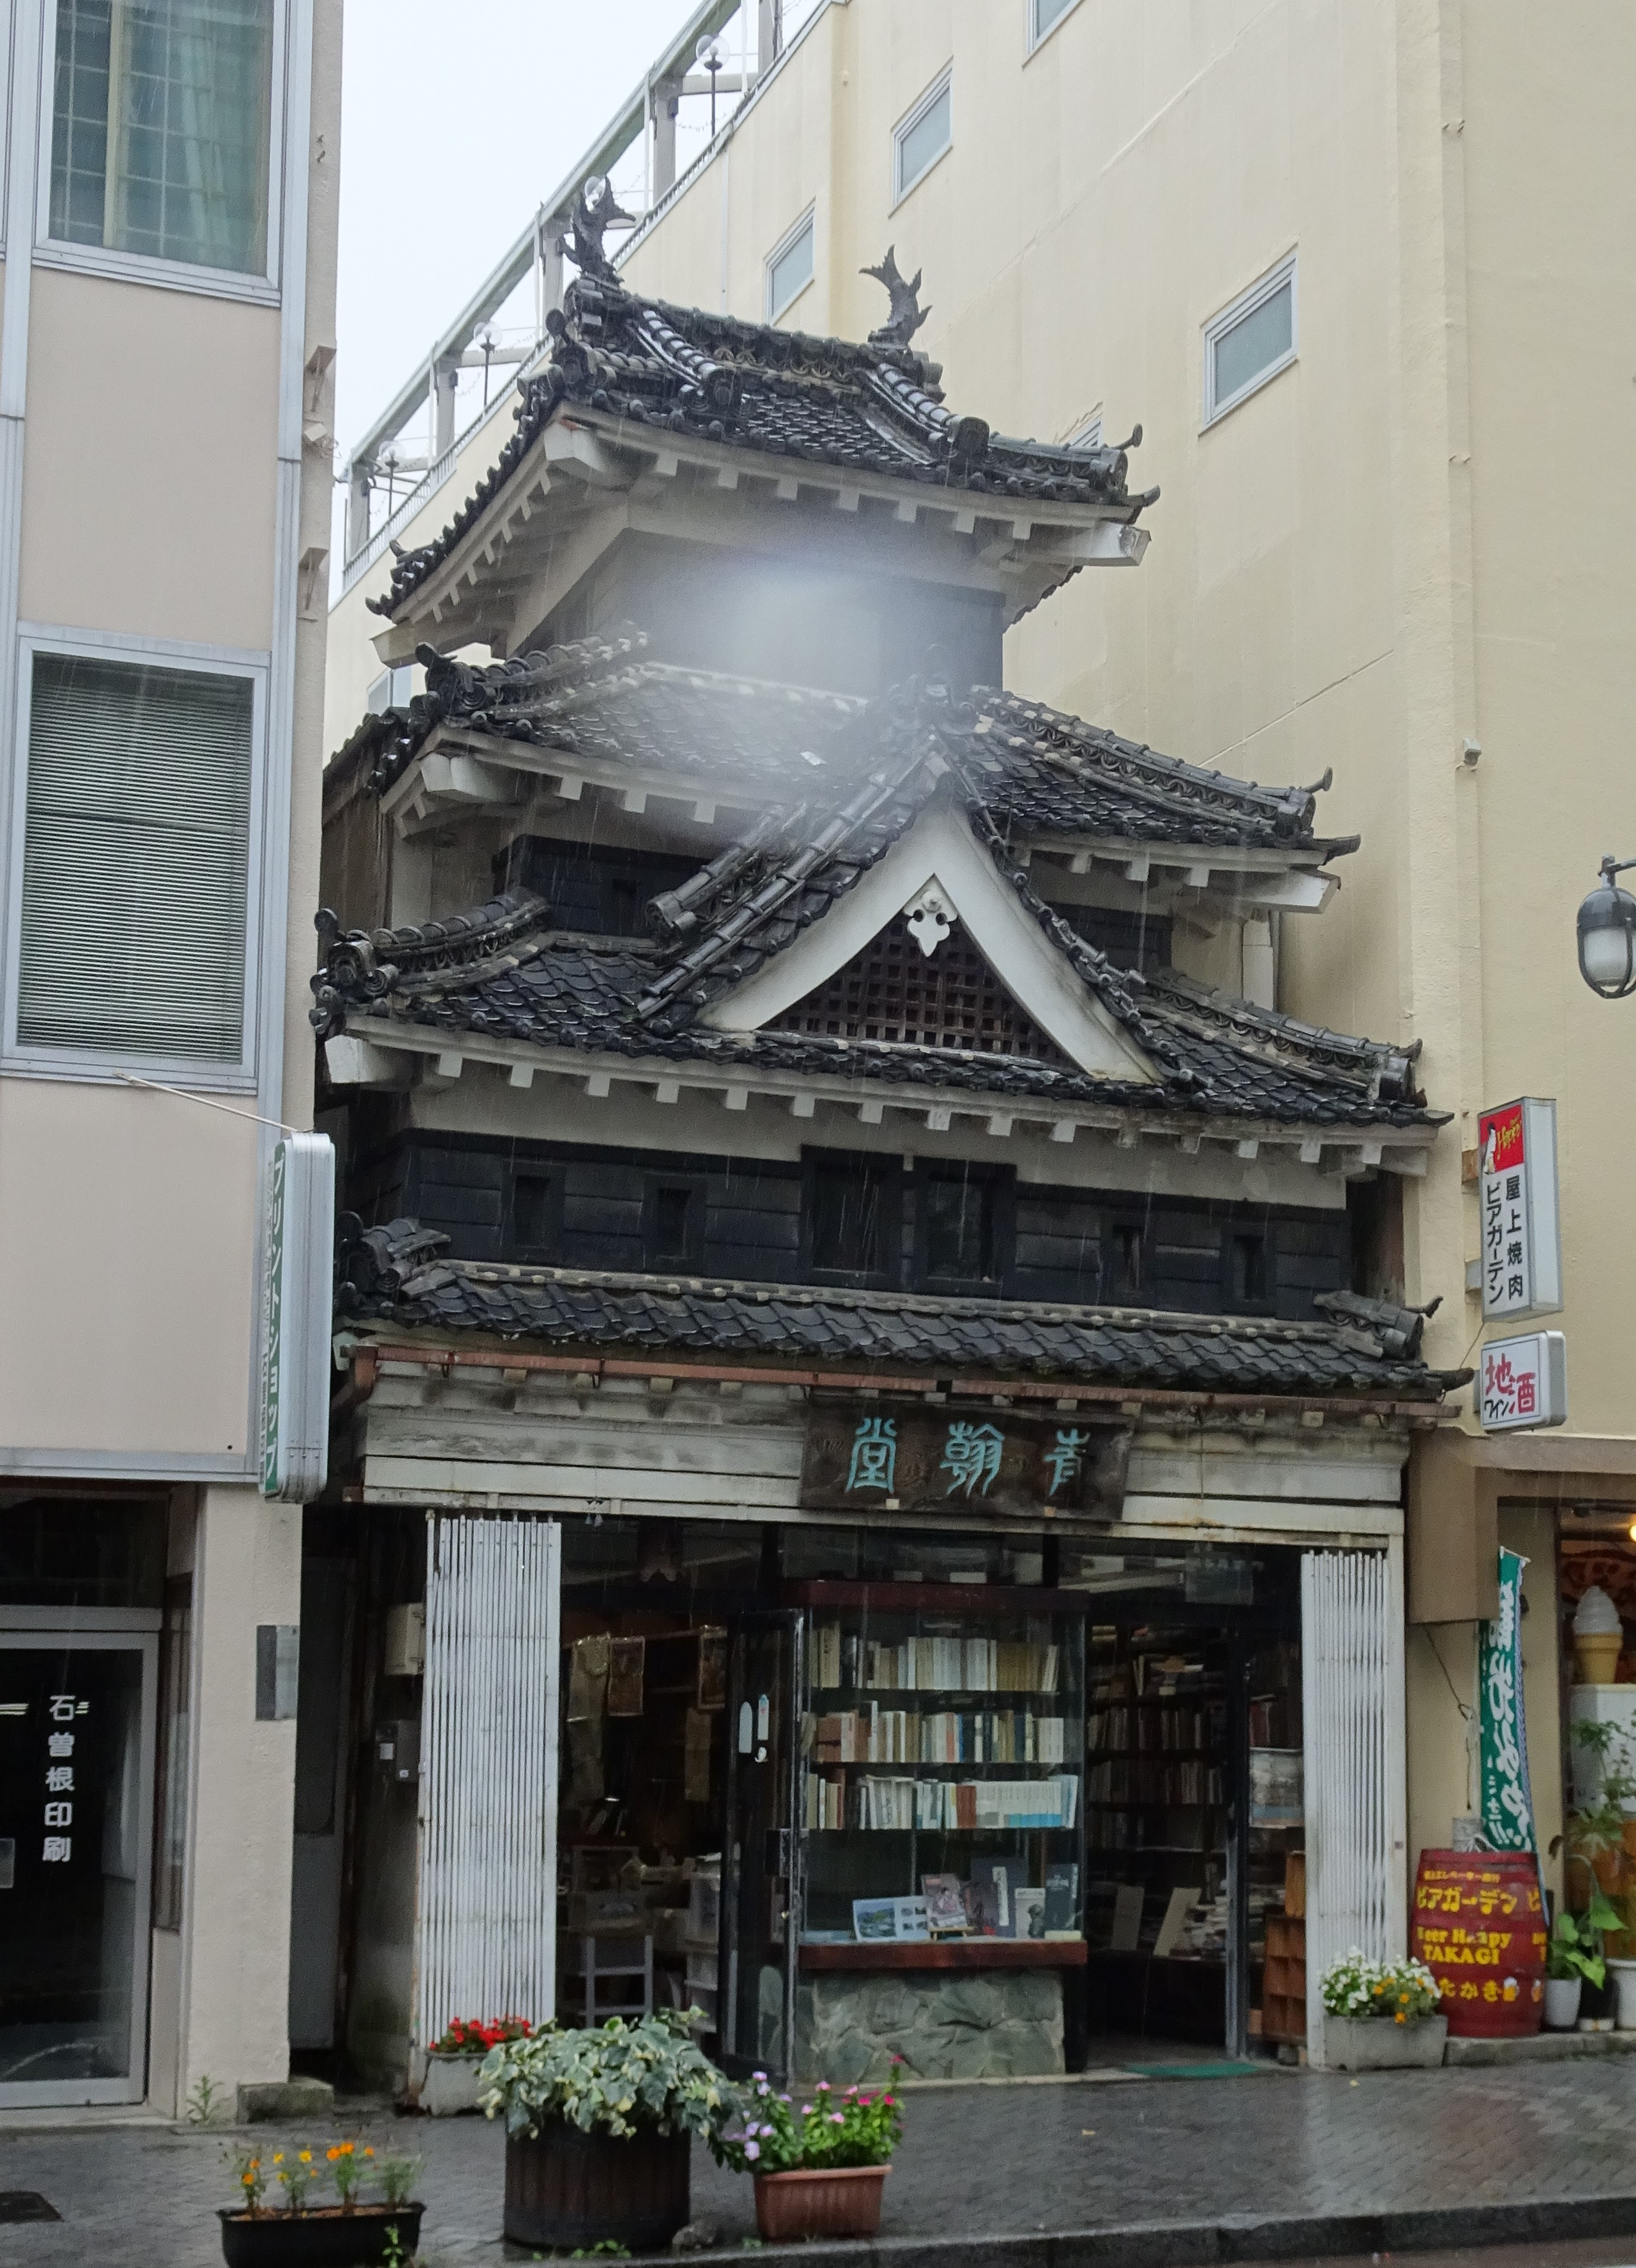 An old shop in rainy Matsumoto